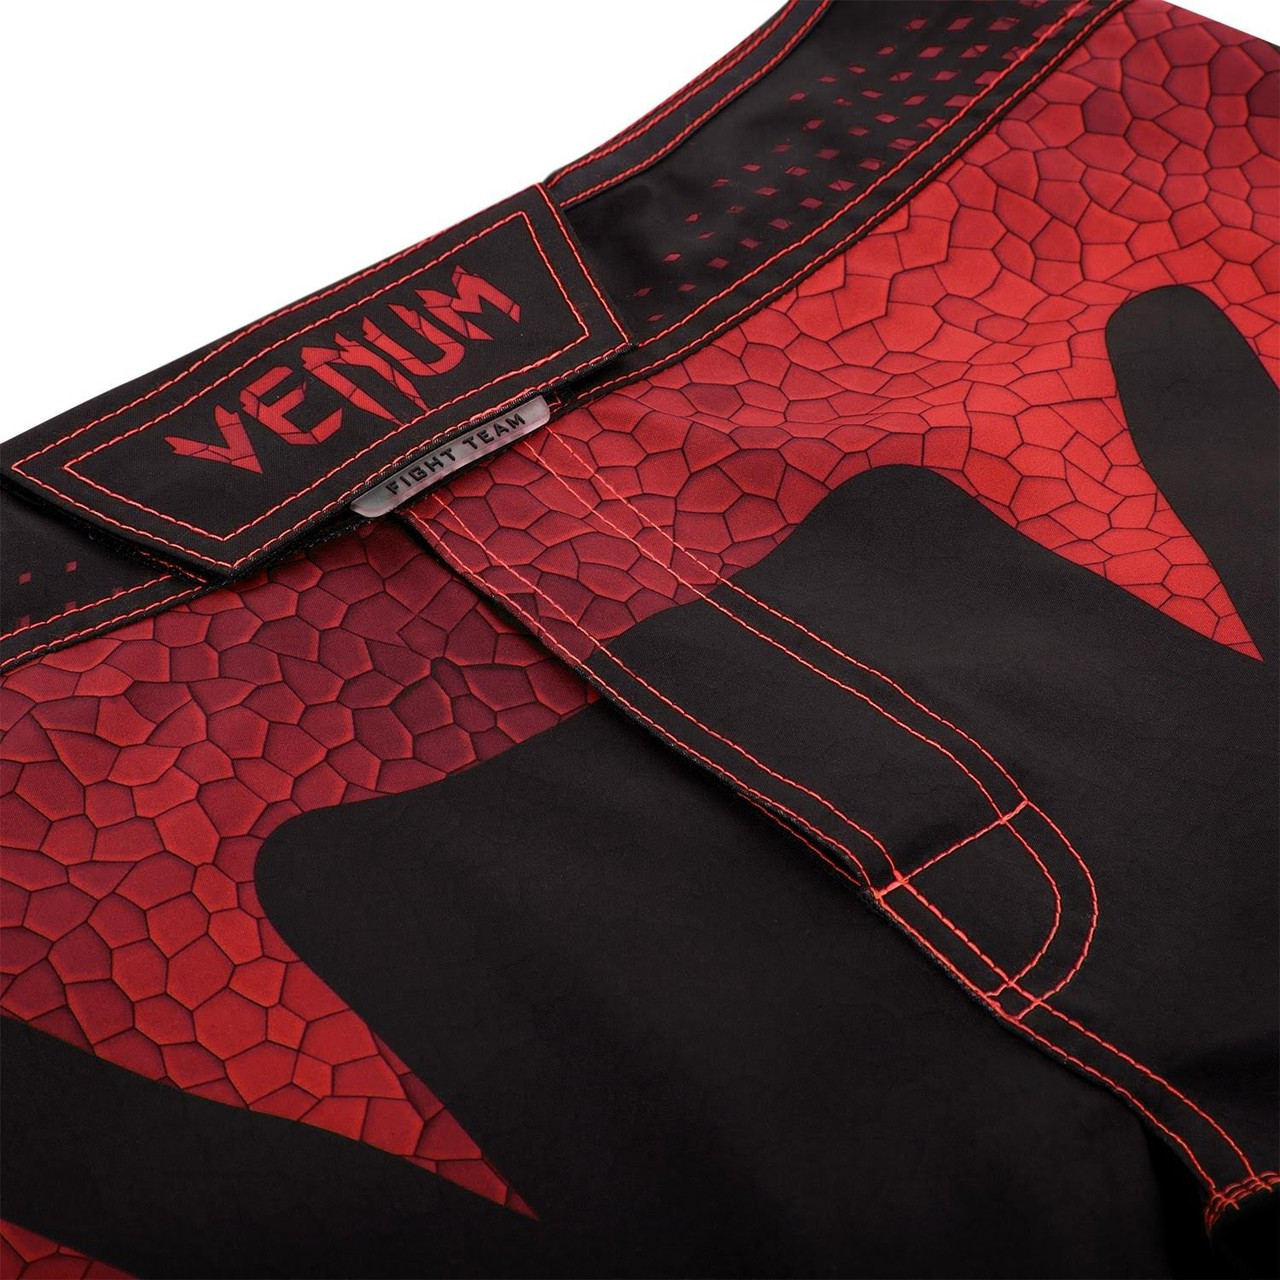 Closure zoom in to thew new Venum Hurricane Amazonia MMA Shorts in red.  Available at www.thejiujitsushop.com  Enjoy Free Shipping from The Jiu Jitsu Shop today!